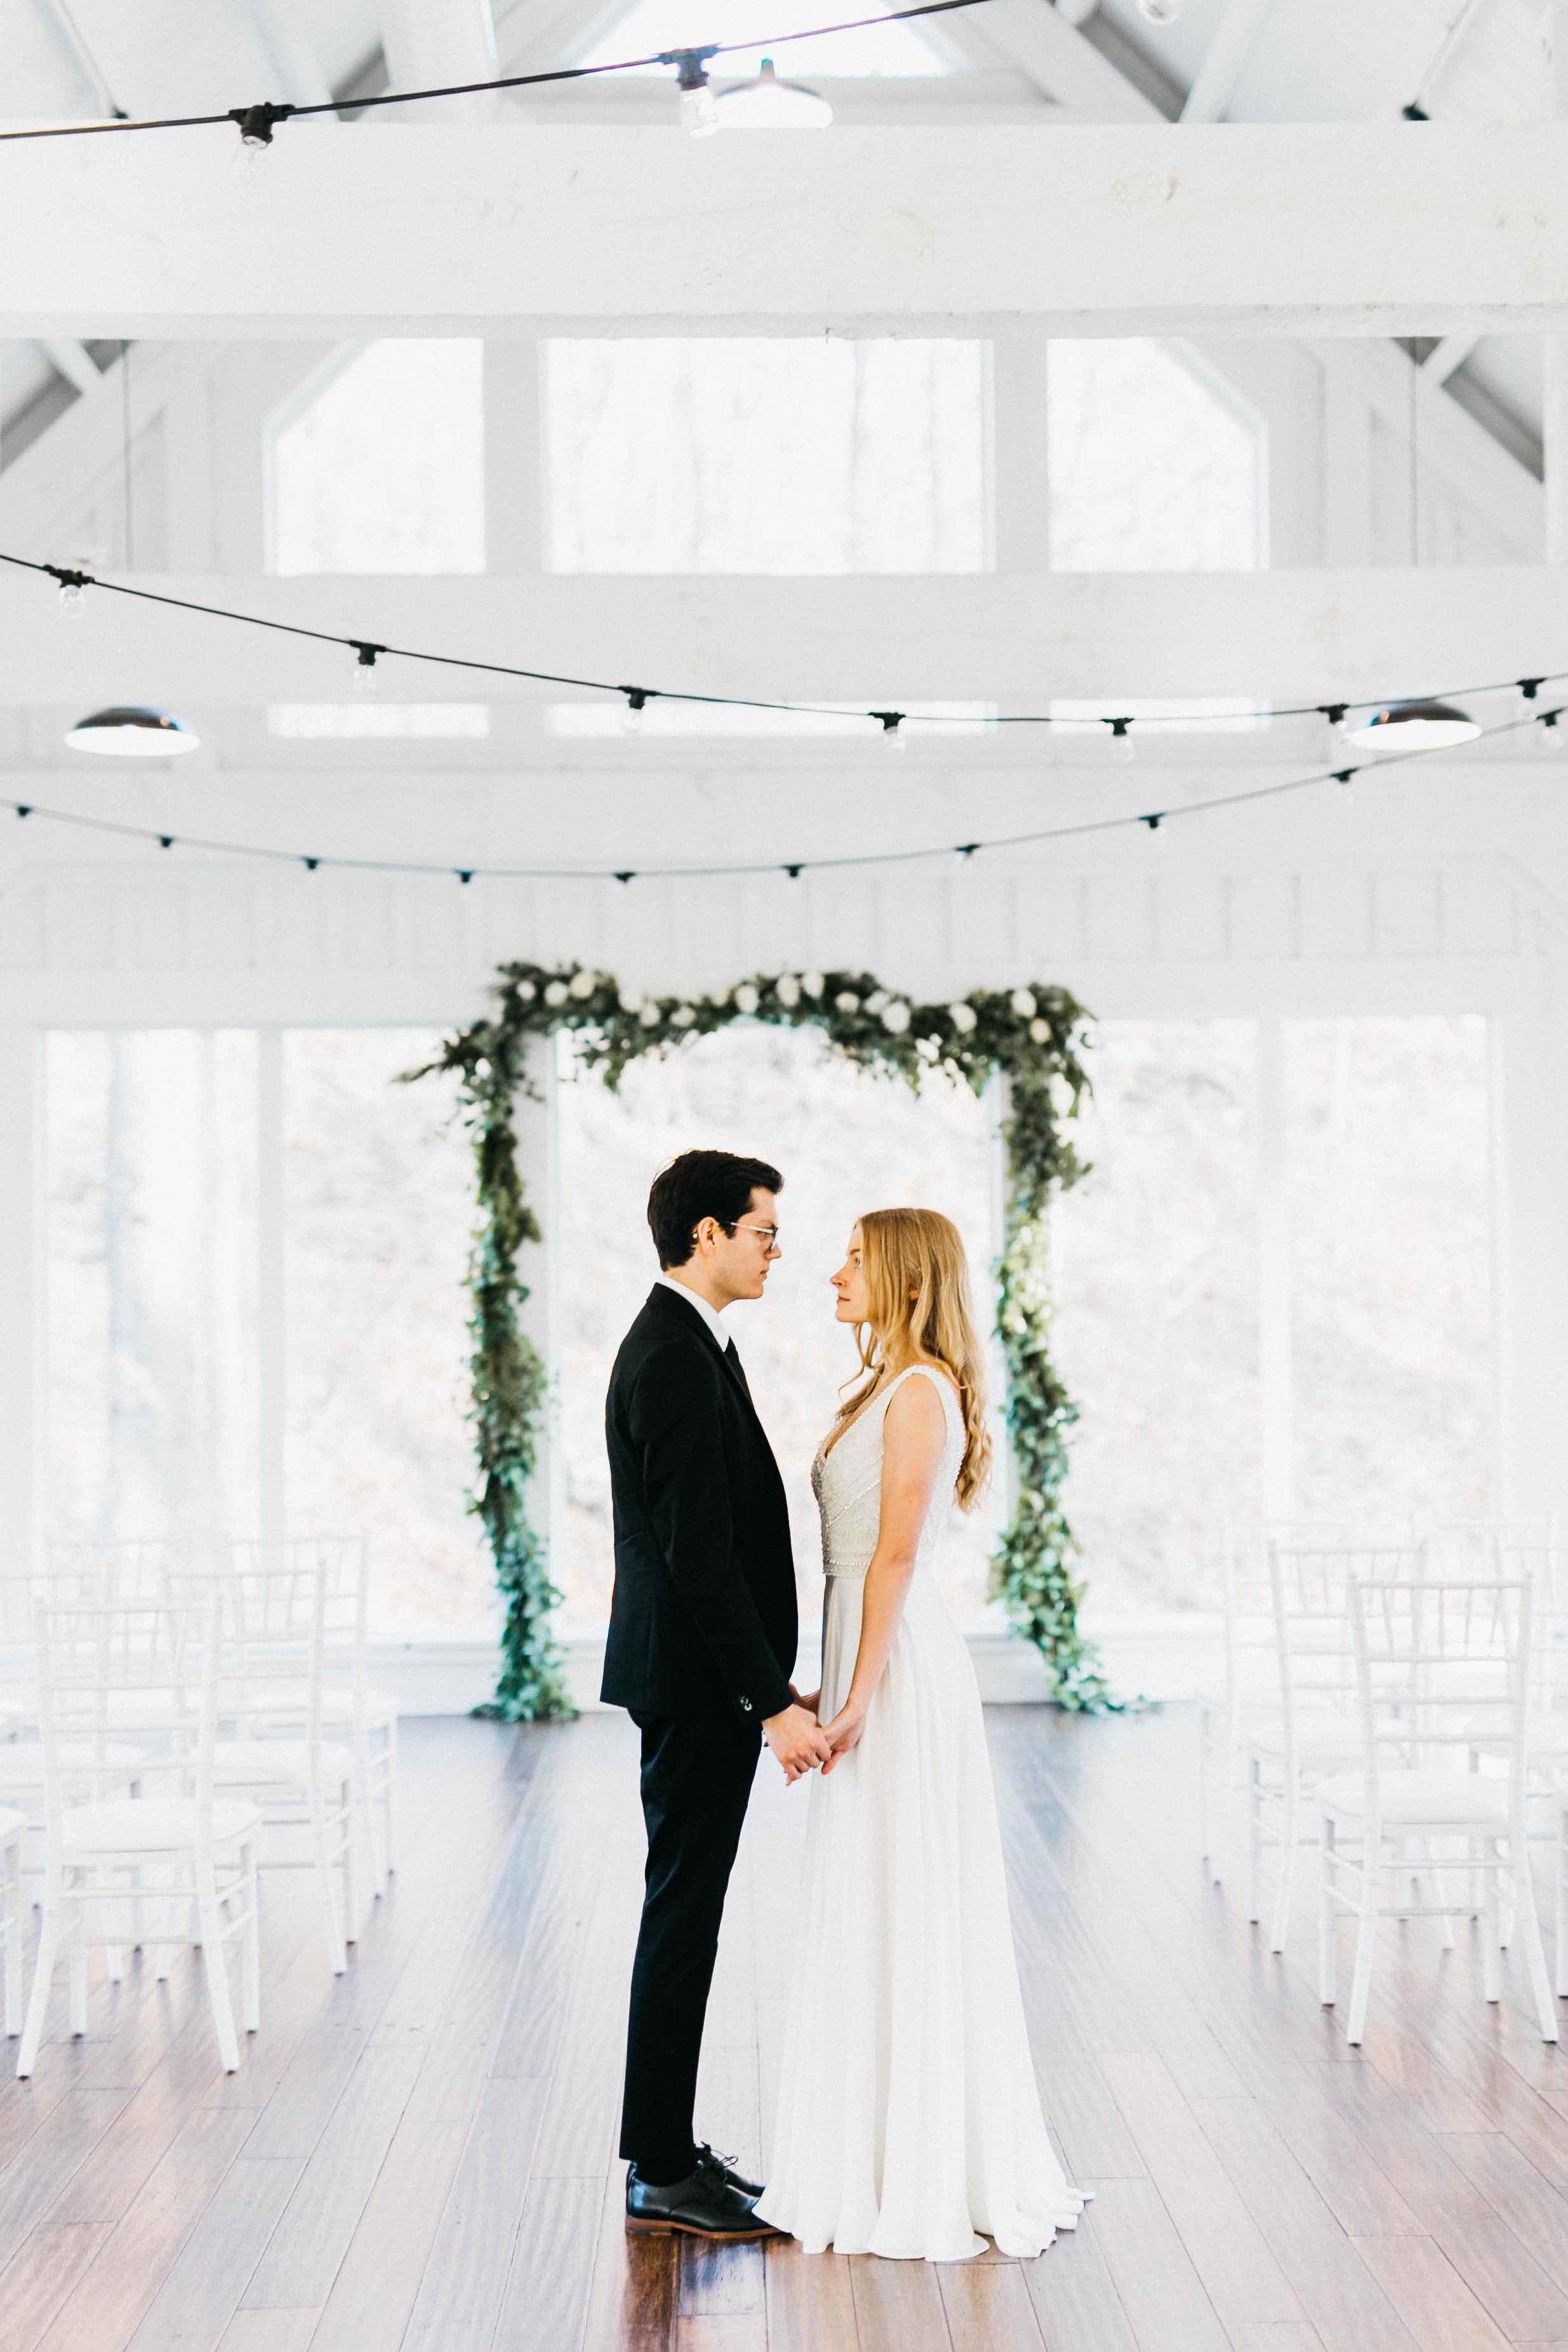 White Barn Elopement in Winter